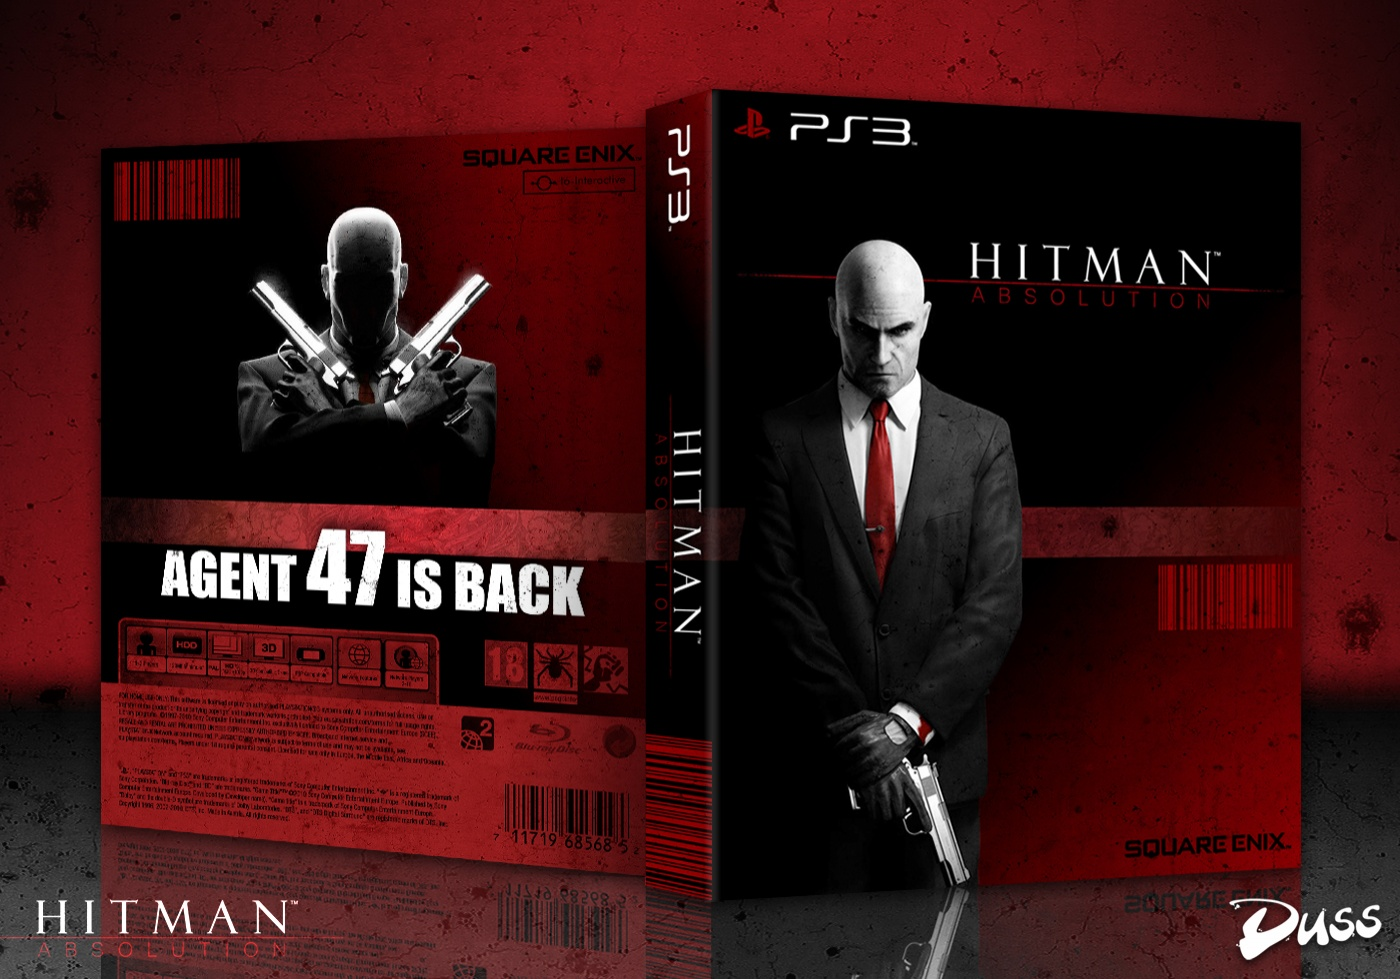 Hitman Absolution Fuse Box : Viewing full size hitman absolution box cover